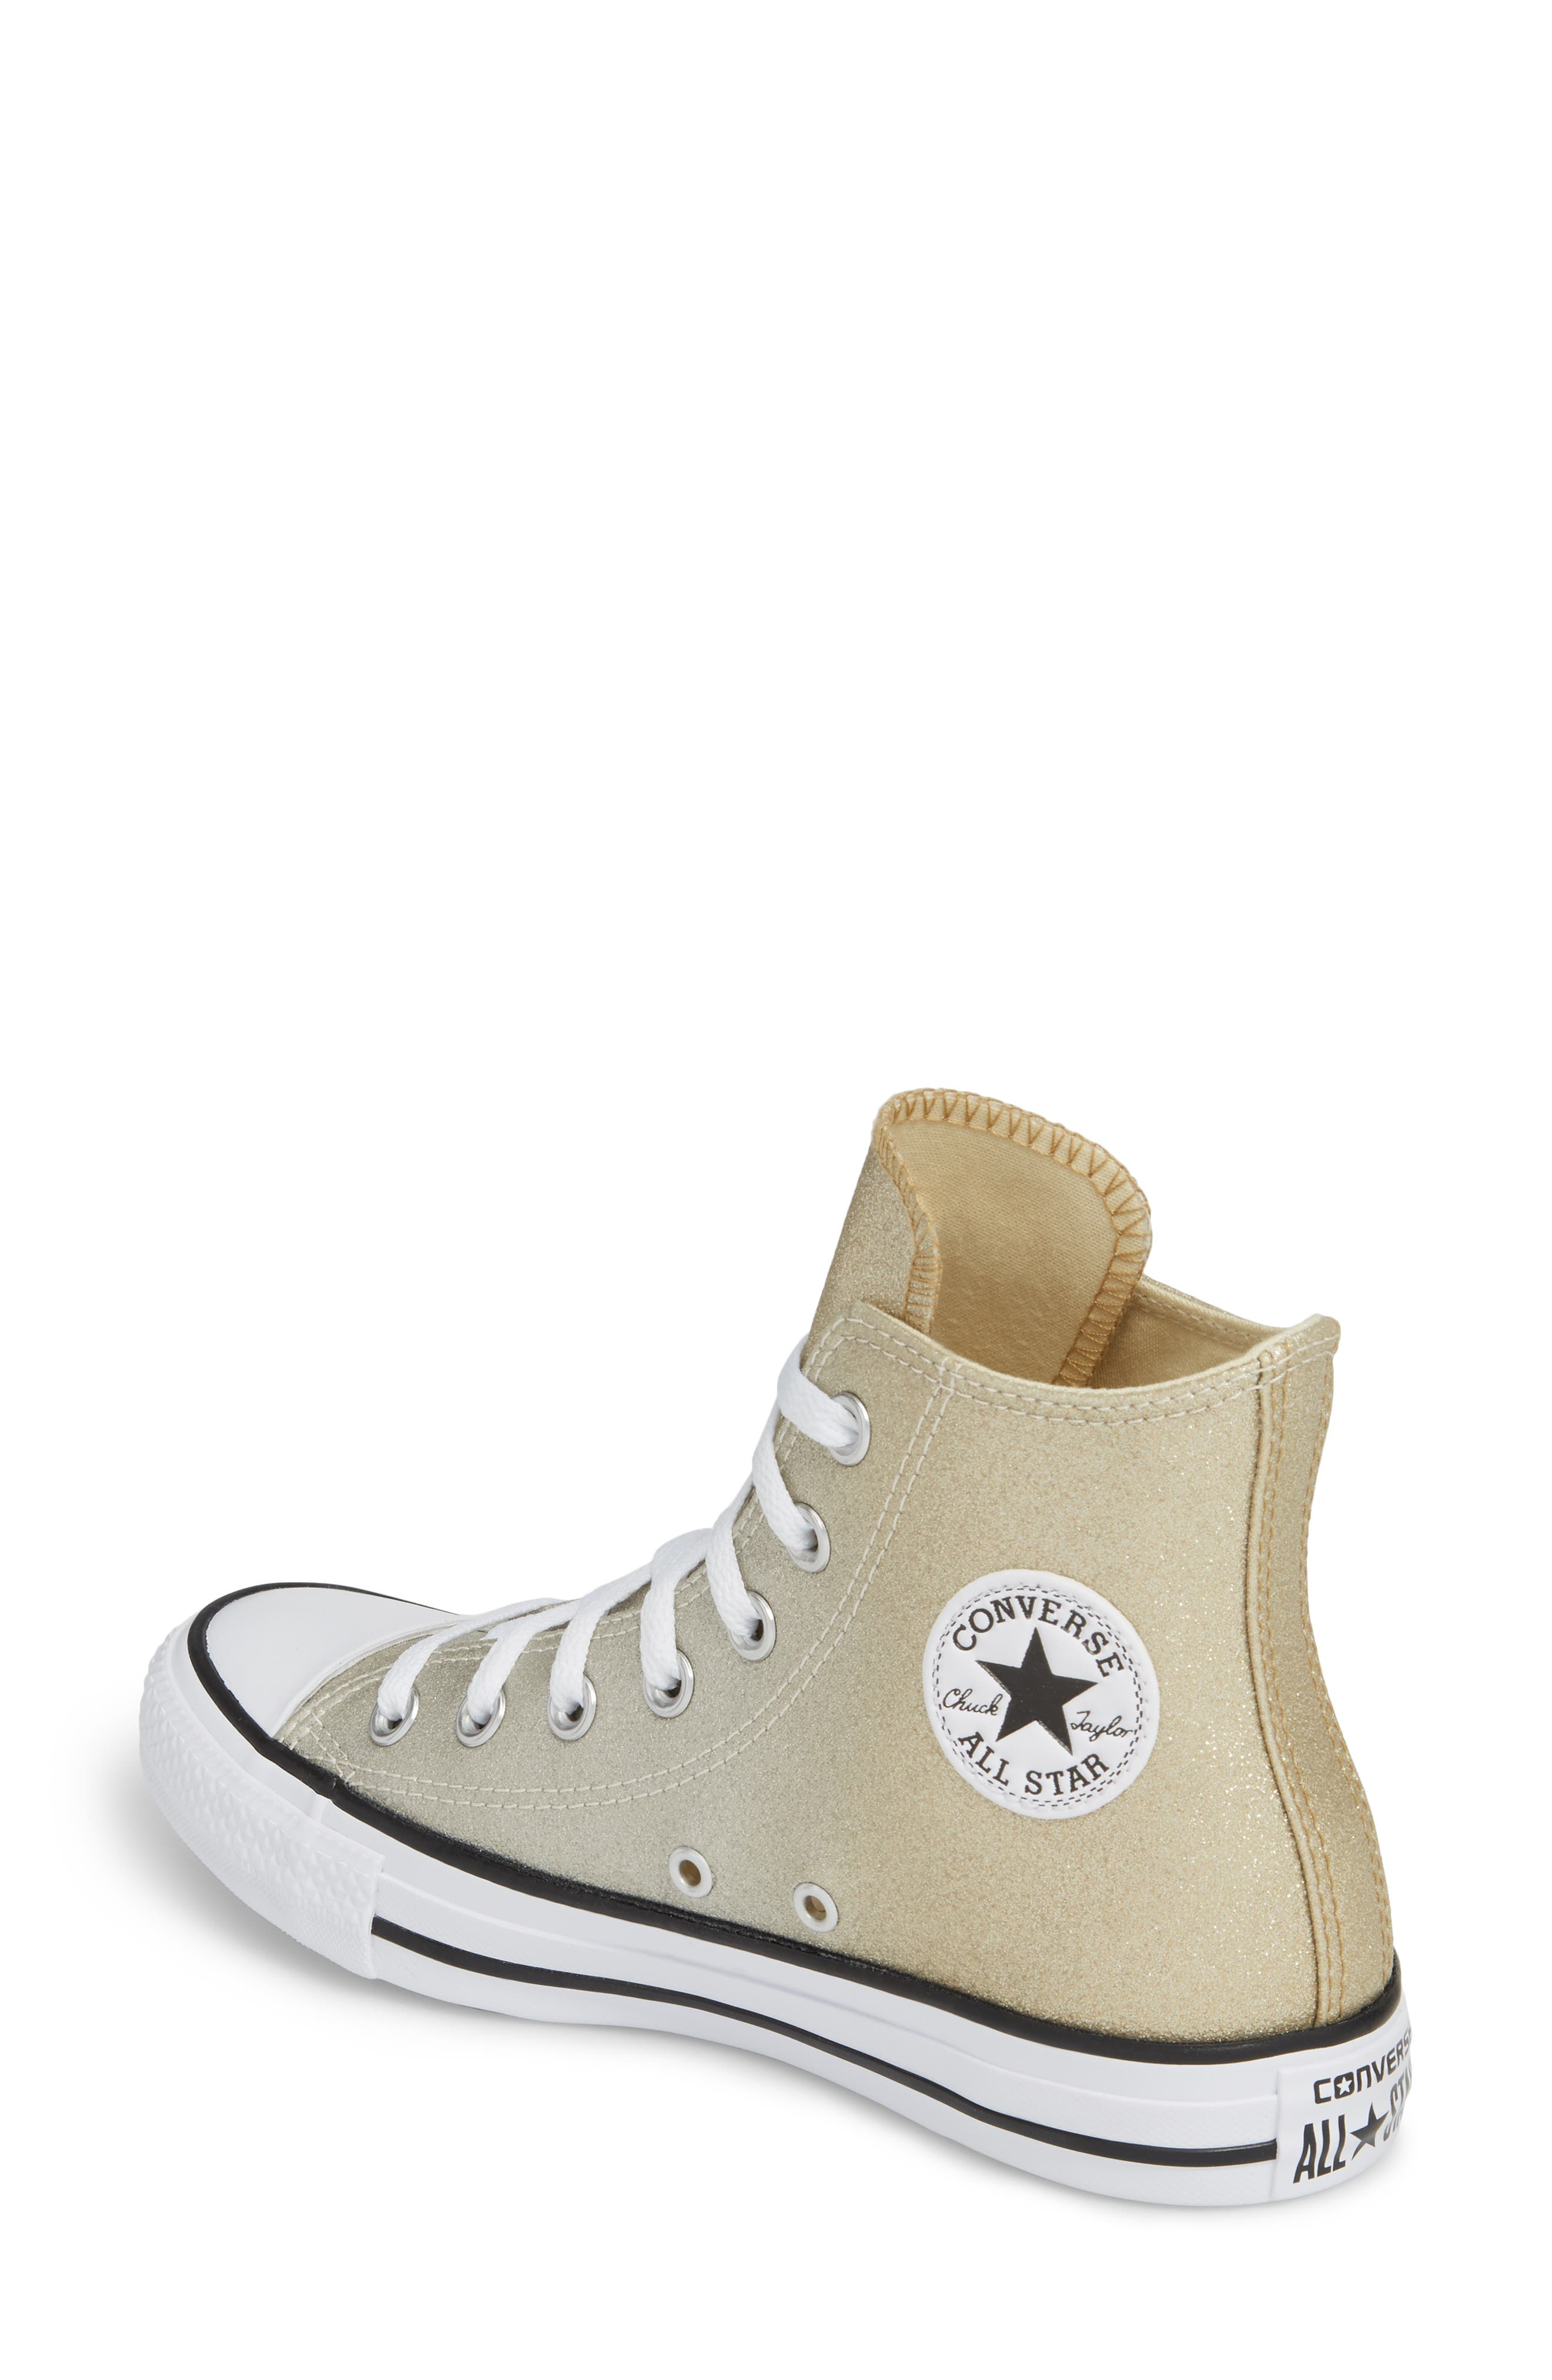 Chuck Taylor<sup>®</sup> All Star<sup>®</sup> Ombré Metallic High Top Sneaker,                             Alternate thumbnail 2, color,                             Light Gold